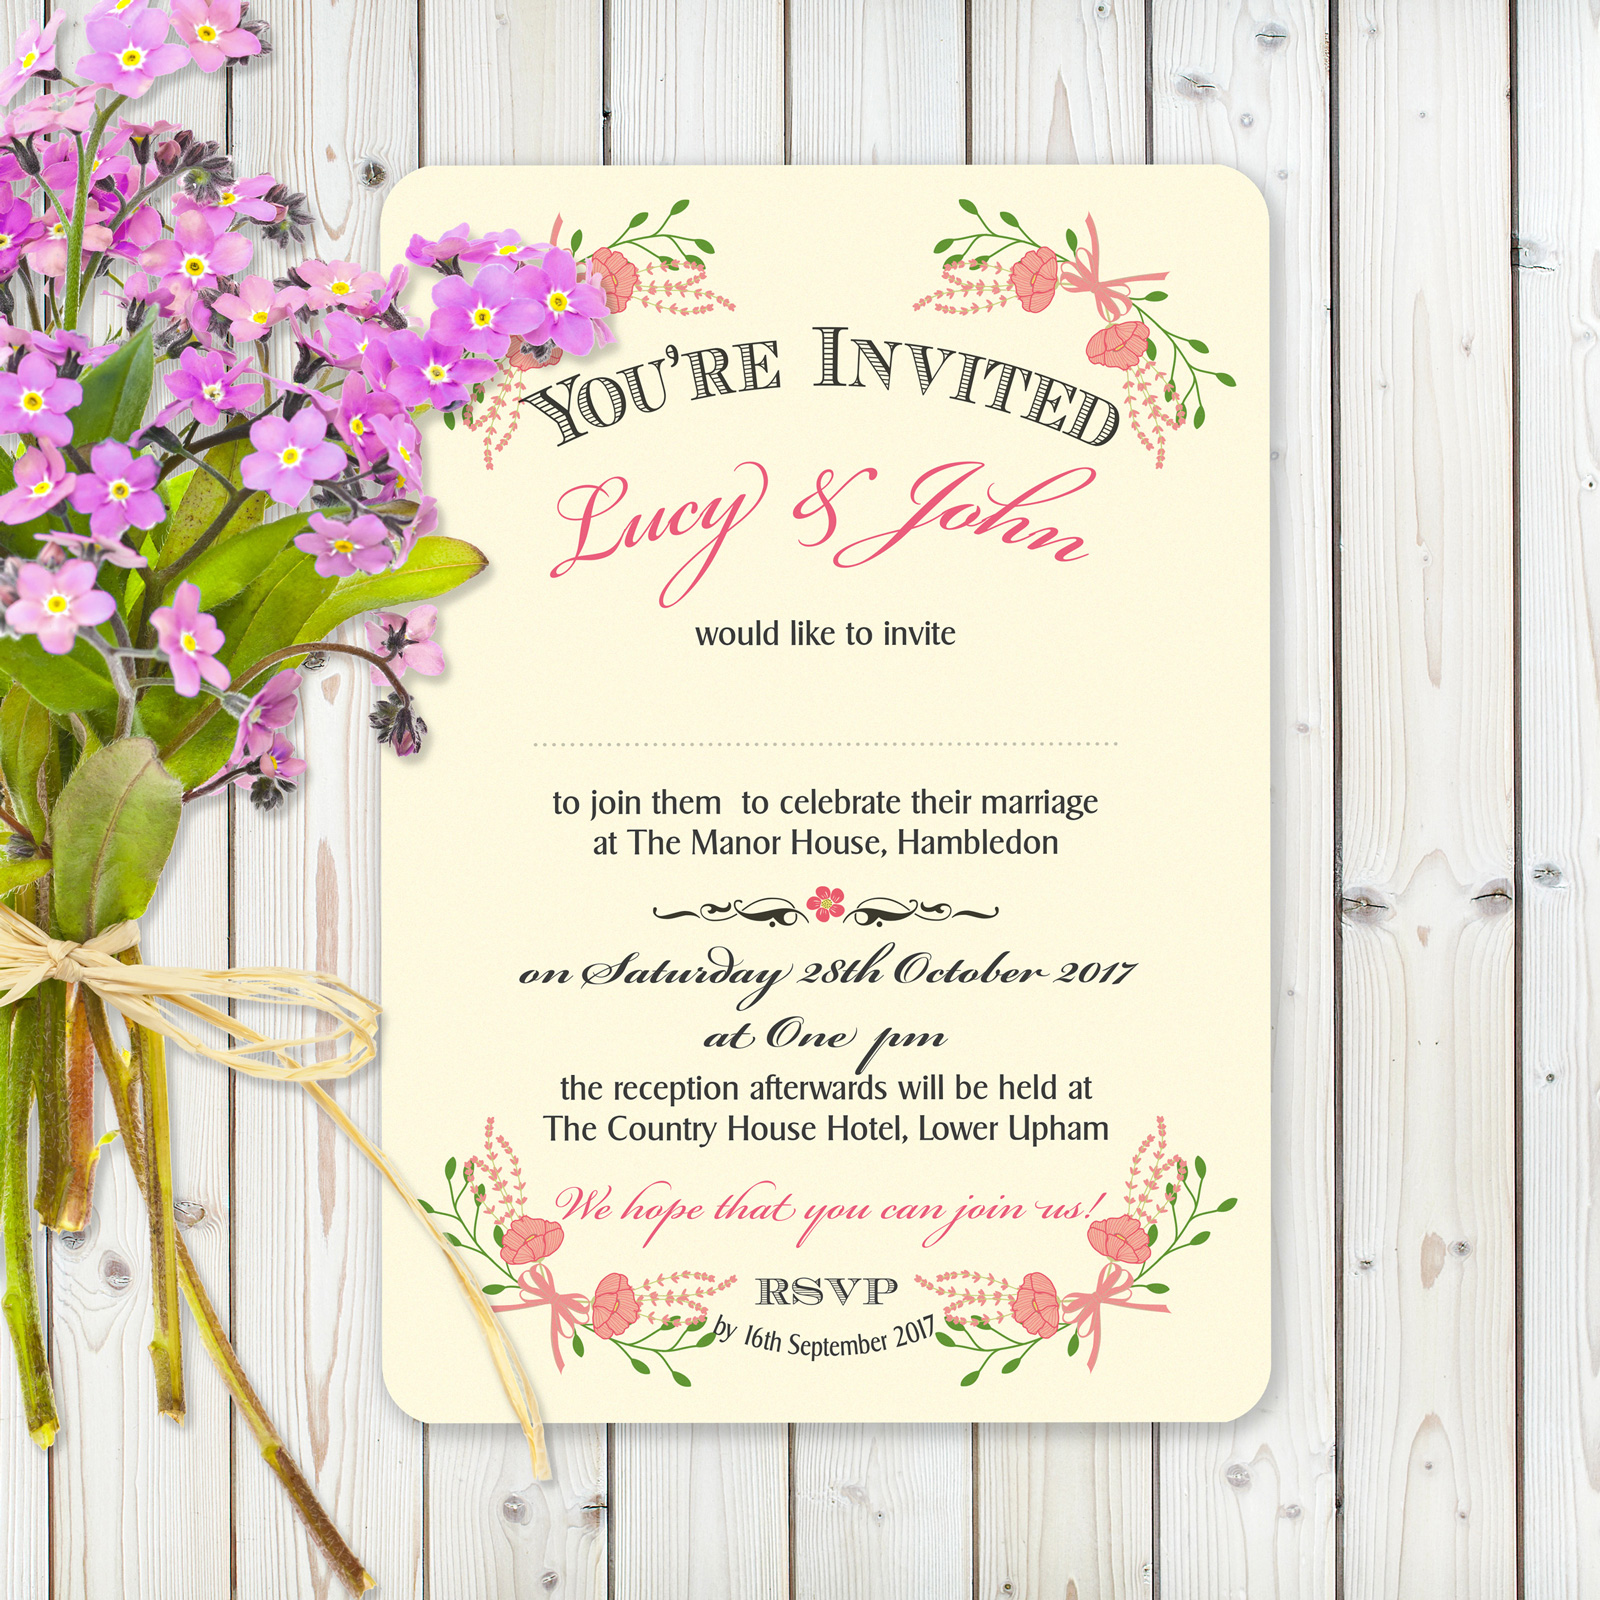 Floral Fantasy Pink on Ivory Card - Day Invitation